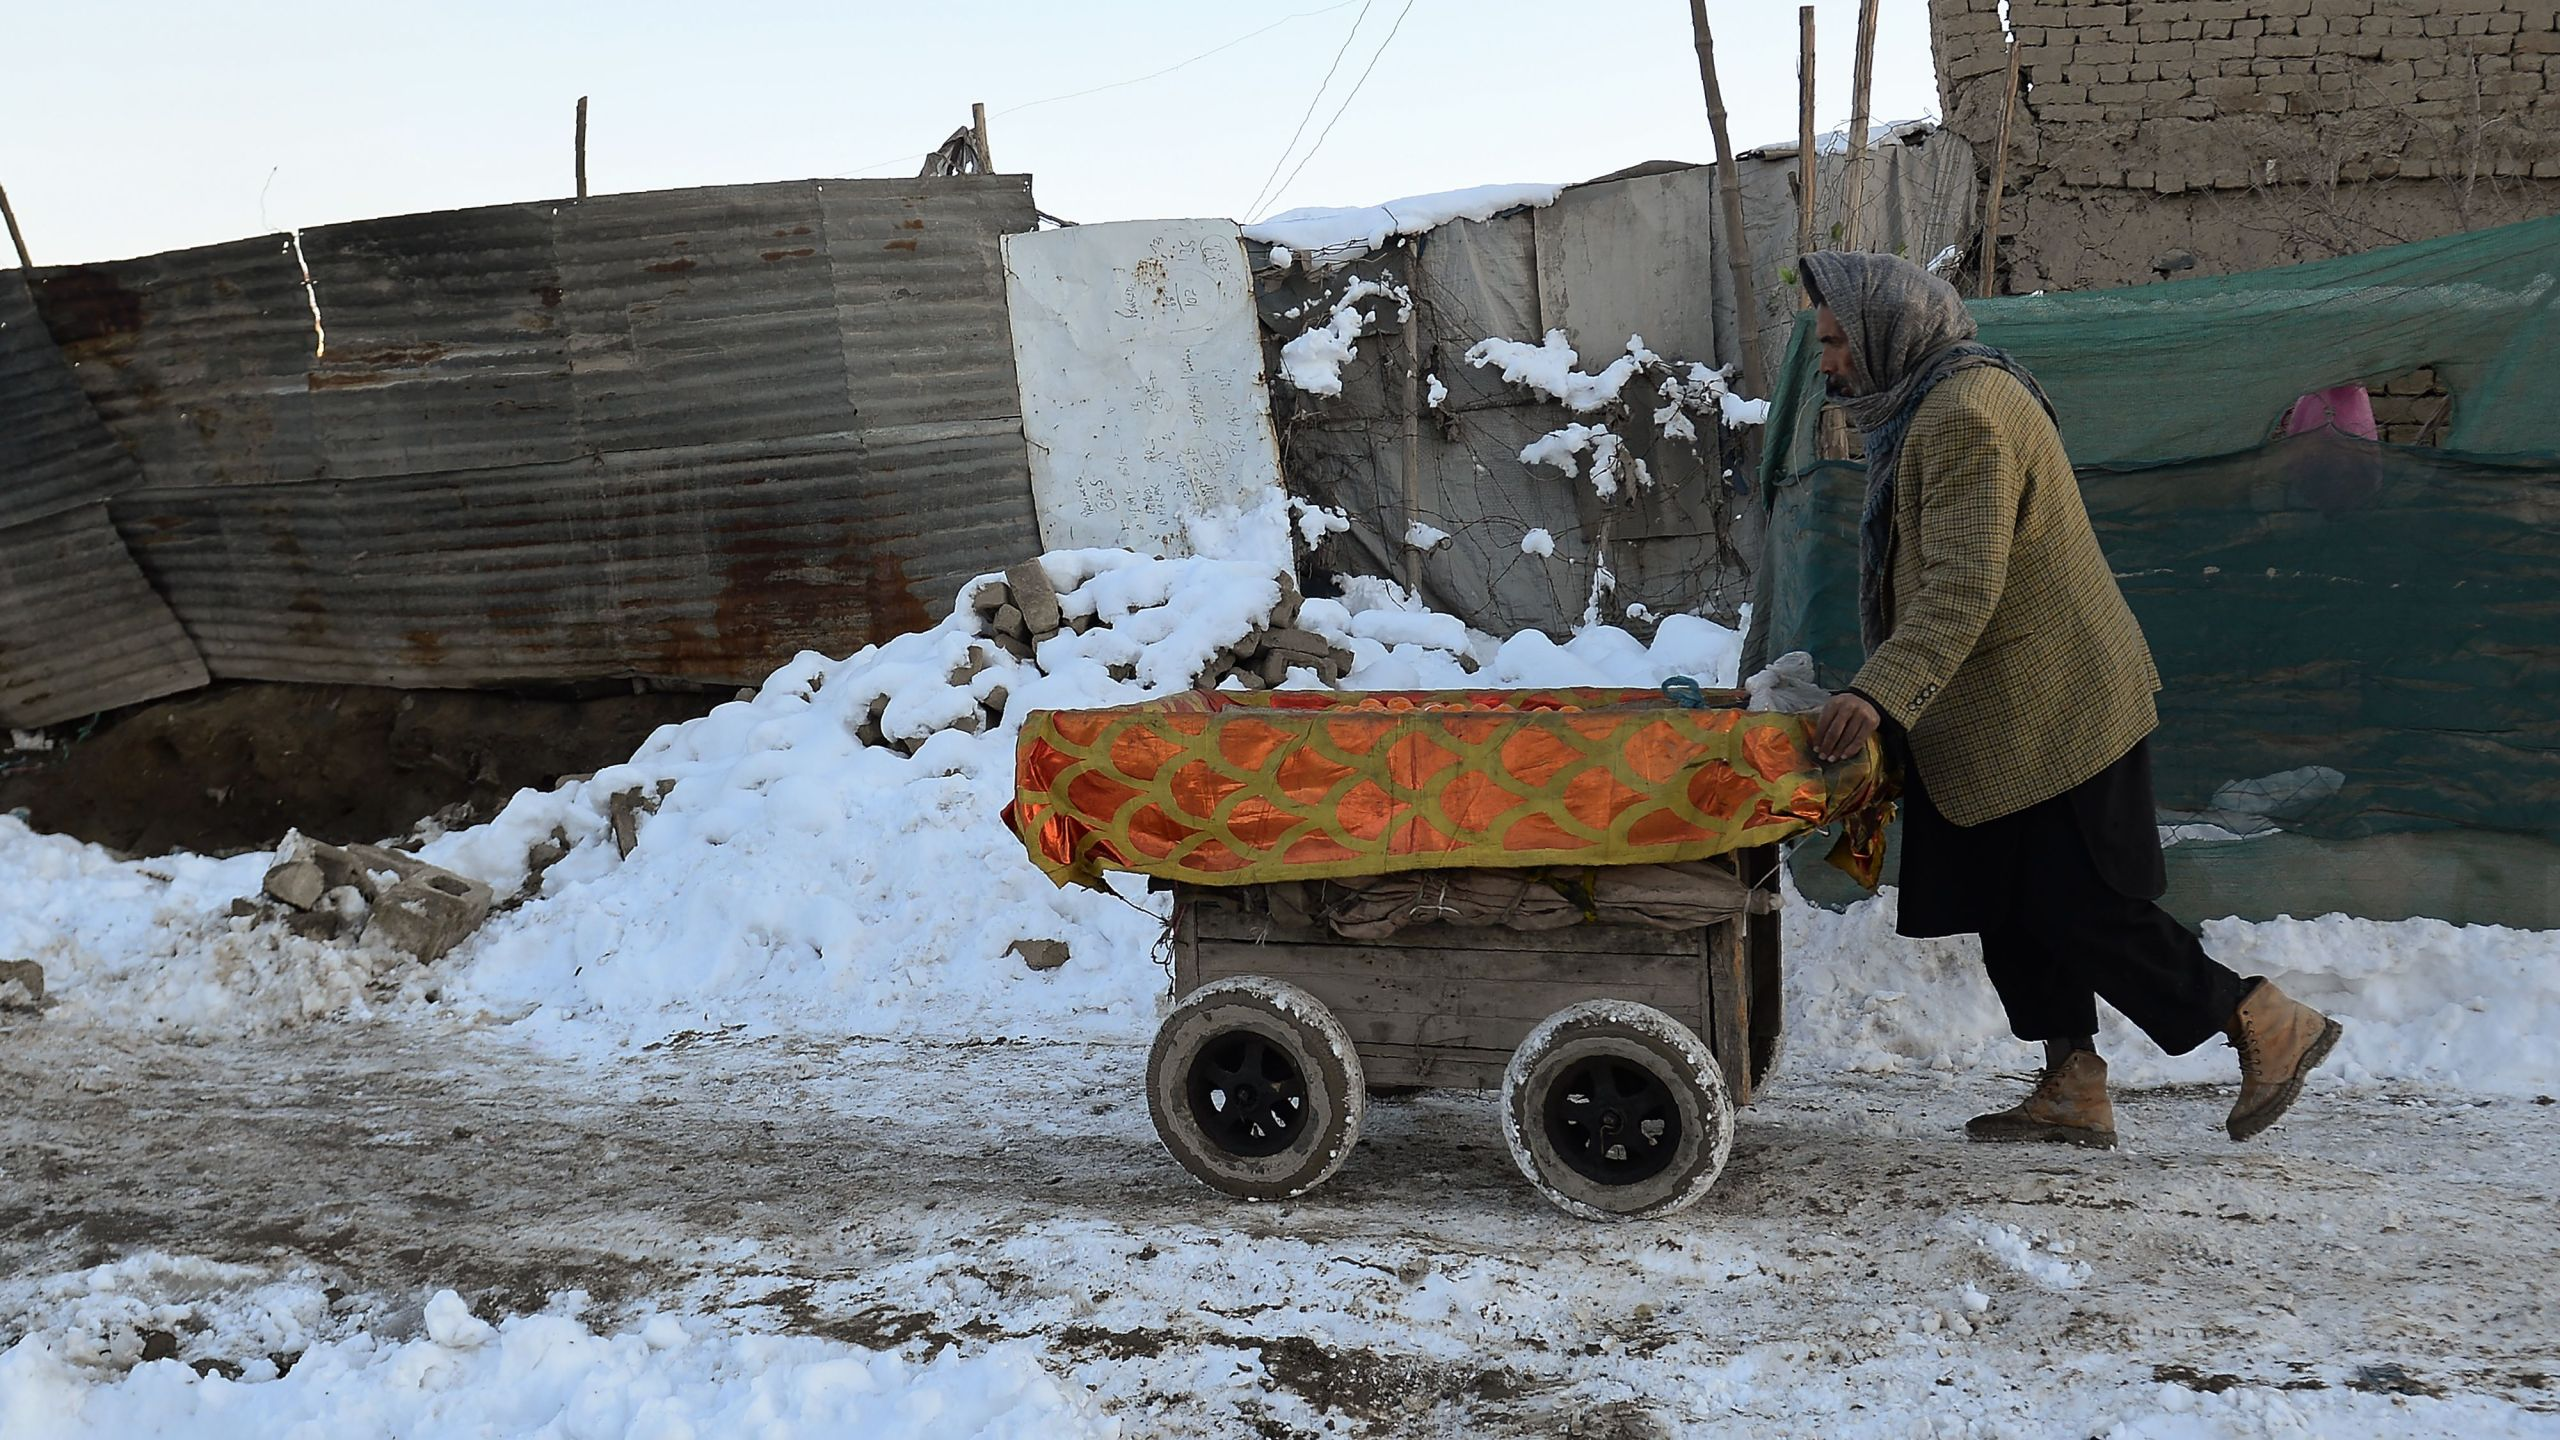 An Afghan fruit vendor pushes his cart along a roadside near the Eid Gah Mosque in Kabul on Jan. 6, 2019. (Credit: Shakib Rahmani/AFP/Getty Images)